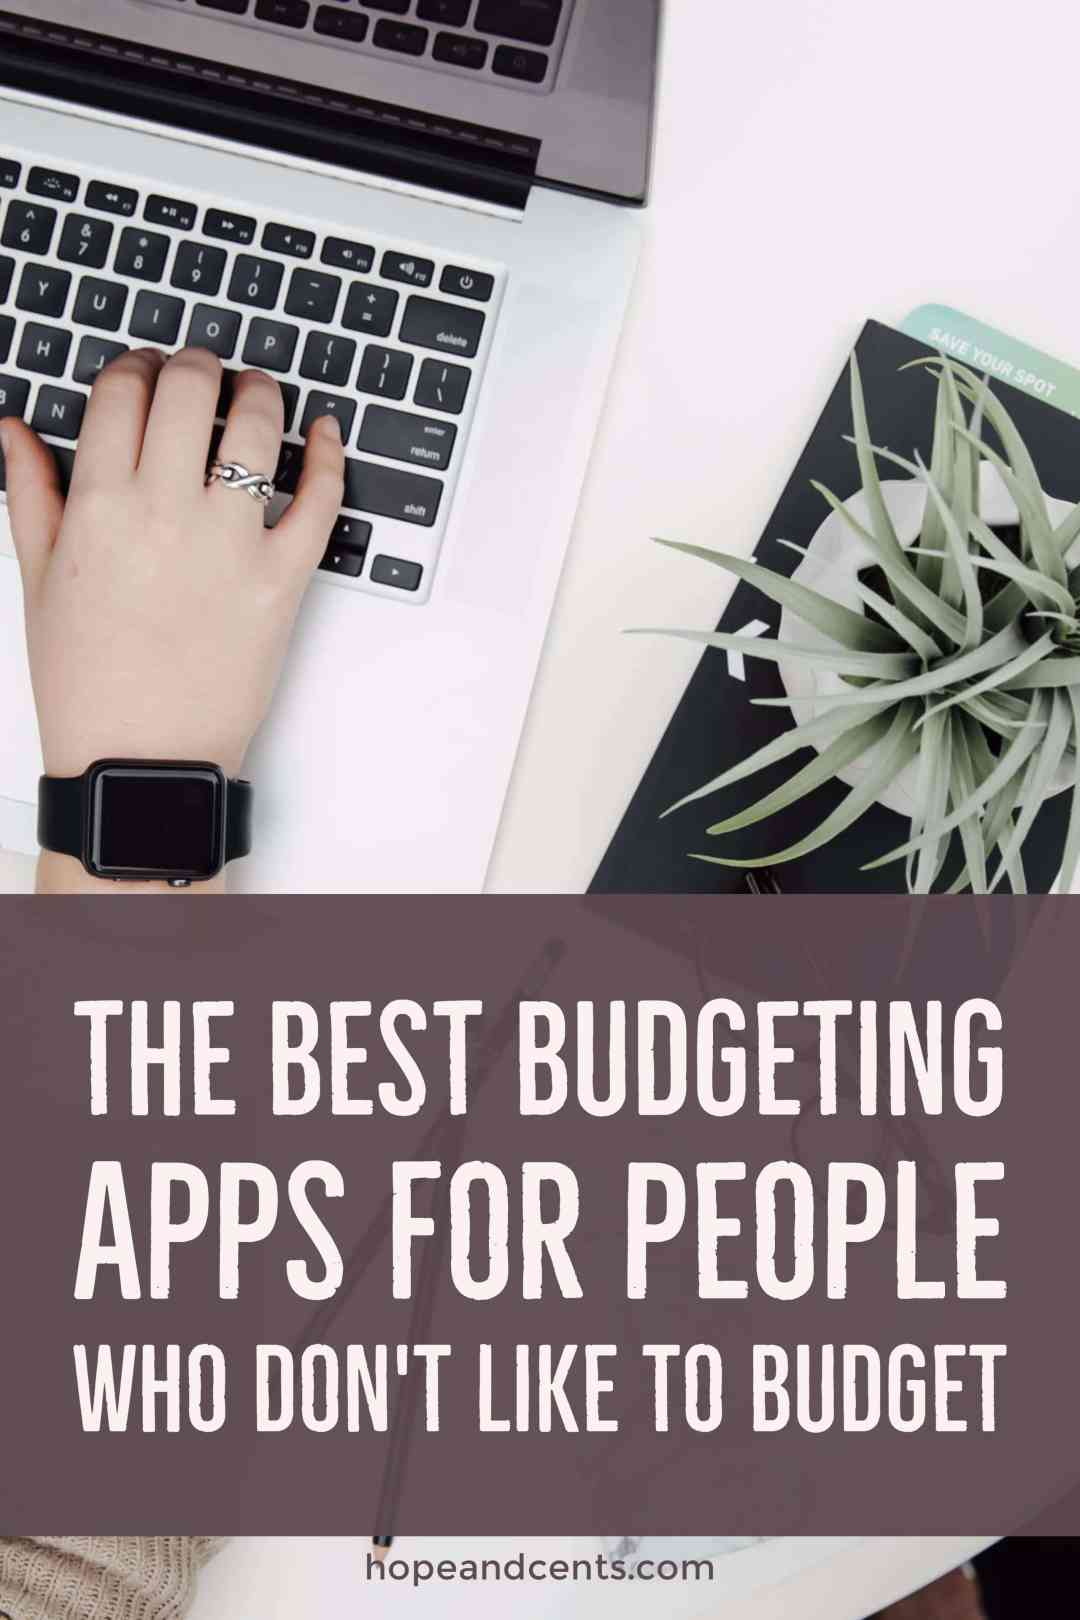 Find out which budgeting apps work for the